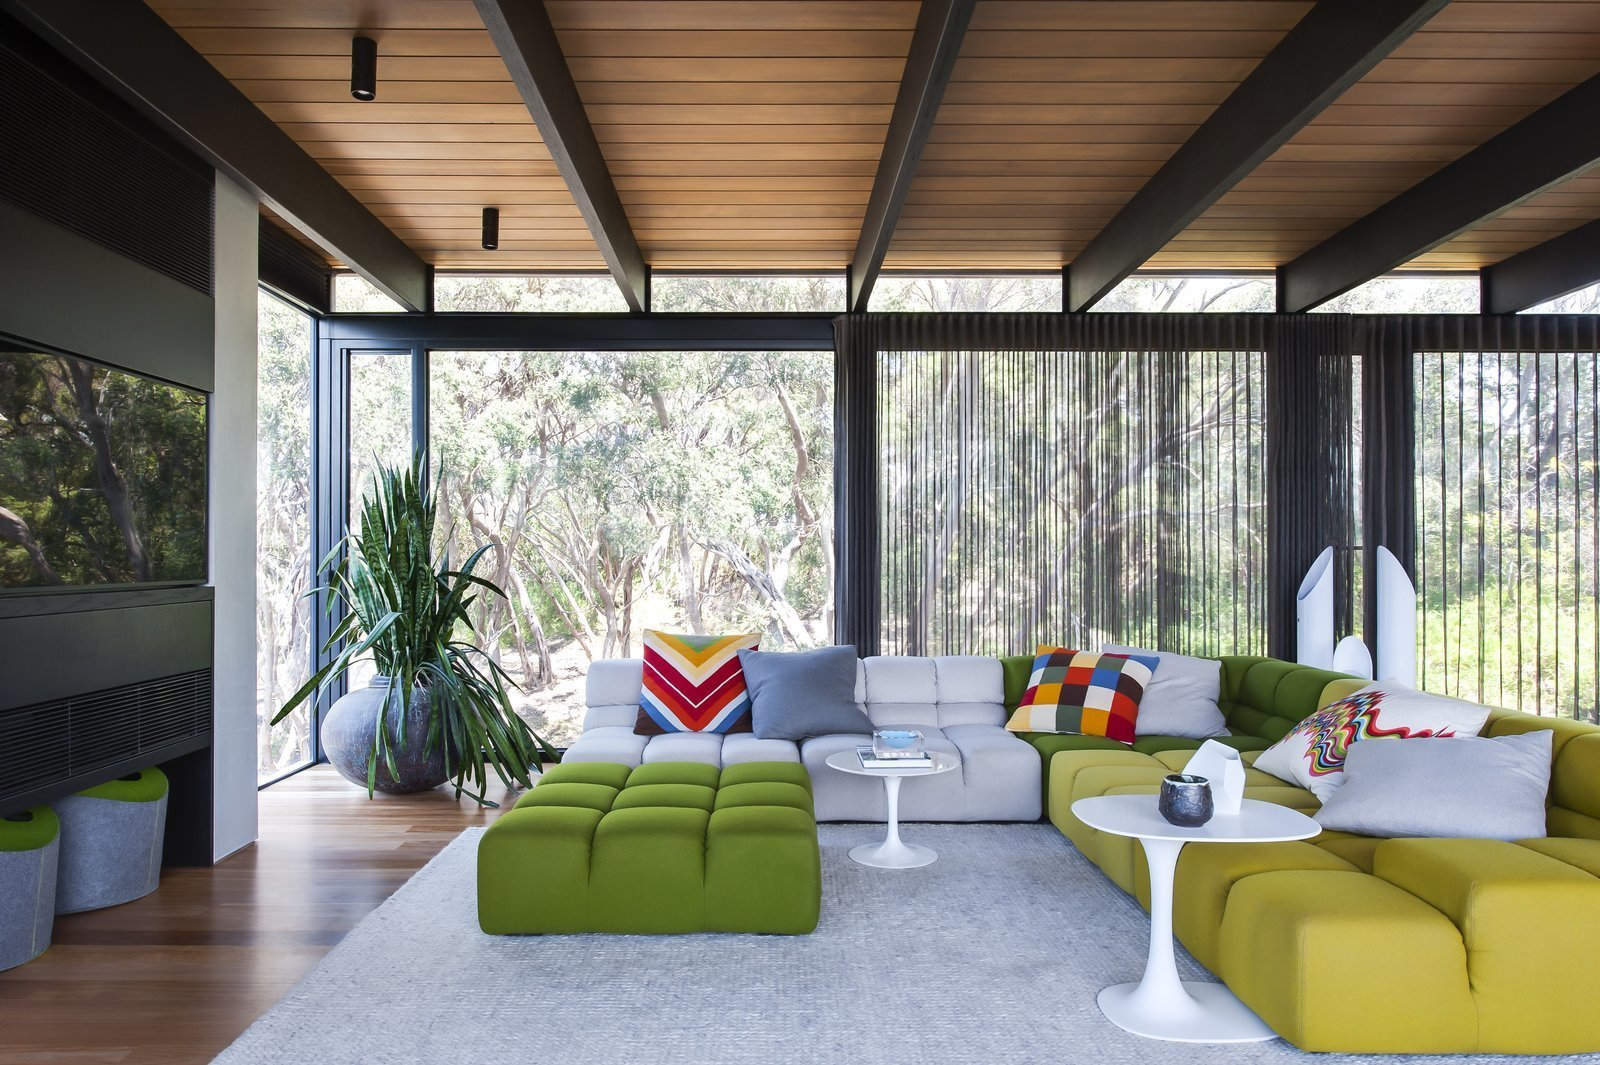 Living Room, End Tables, Ceiling Lighting, Storage, Sofa, Medium Hardwood Floor, and Rug Floor In this house in the Mornington Peninsula in the south of Melbourne, materials like concrete, natural stone, steel and cedar are perfect backdrops for architecture and interior design firm SJB to use bold colors and edgy midcentury furniture.  Best Photos from 11 Amazing Australian Homes